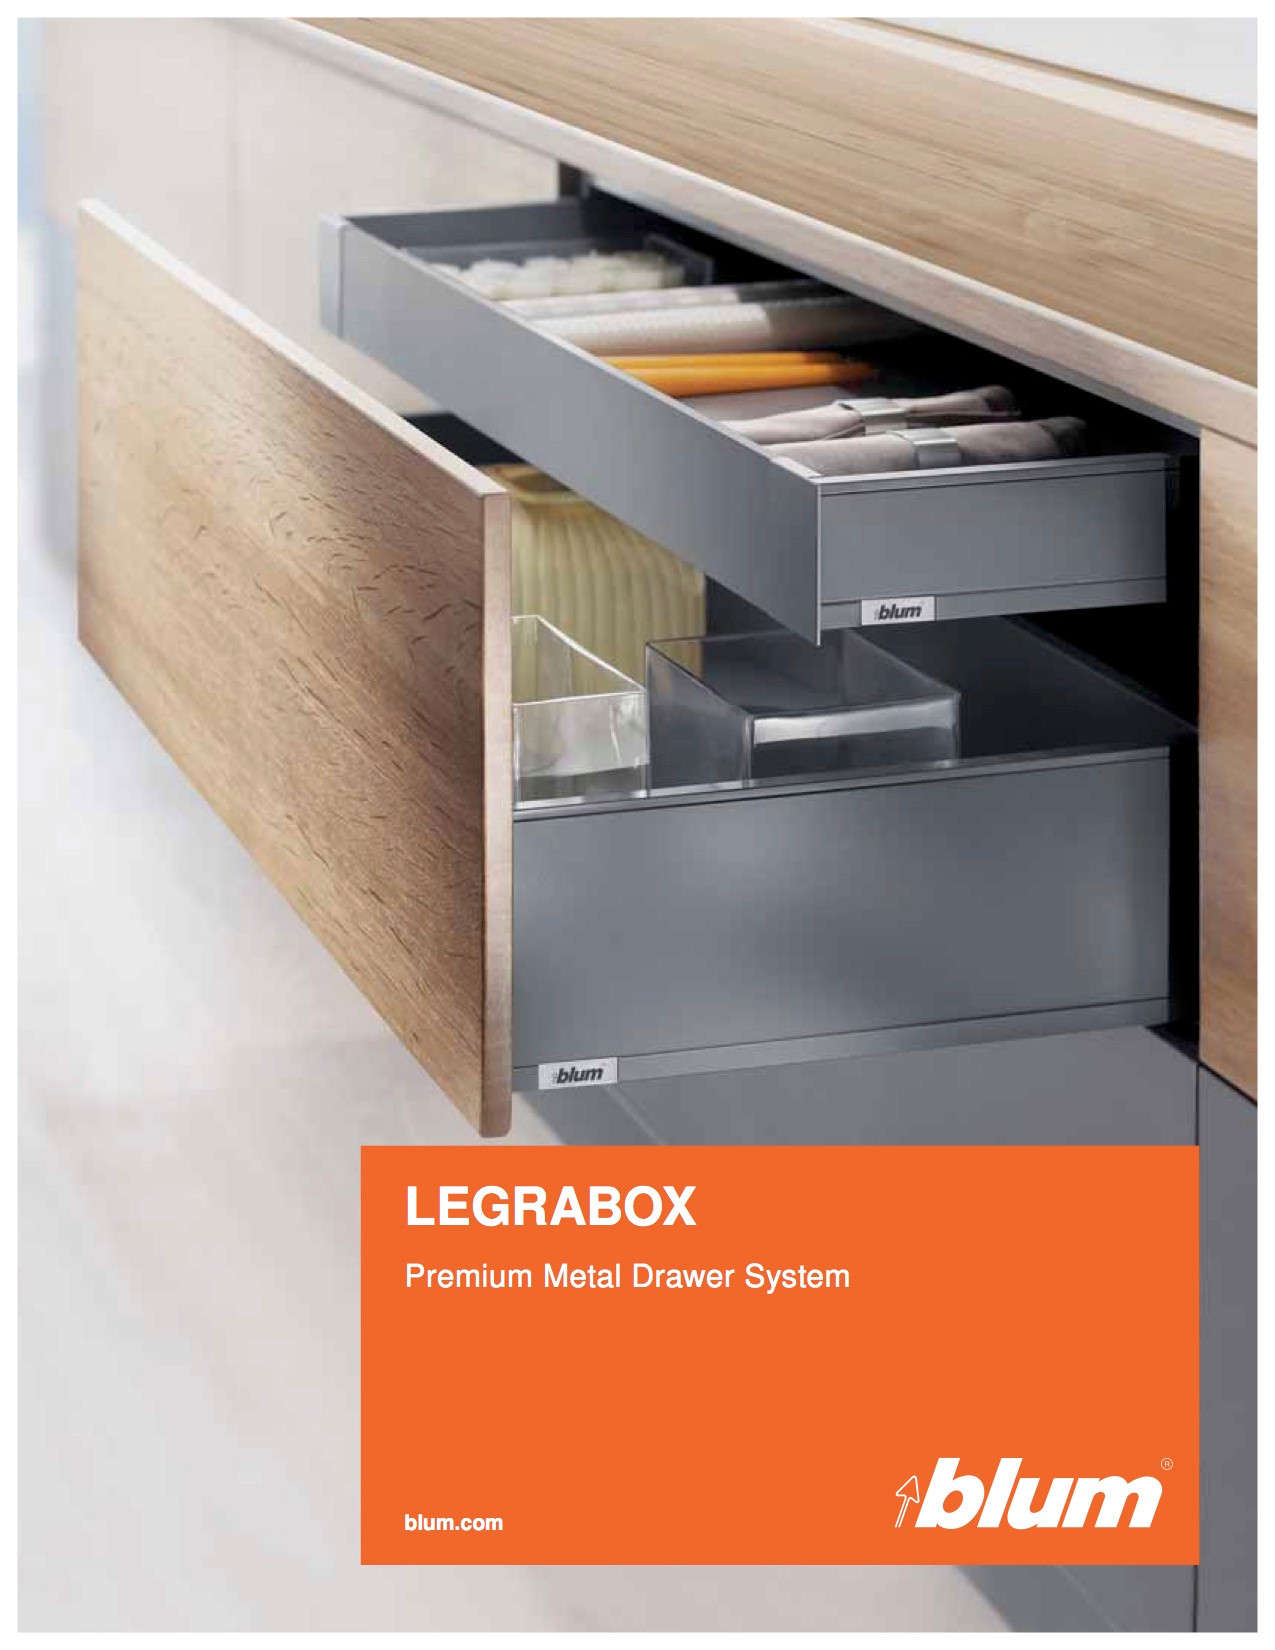 Orion gray legrabox 3.jpg